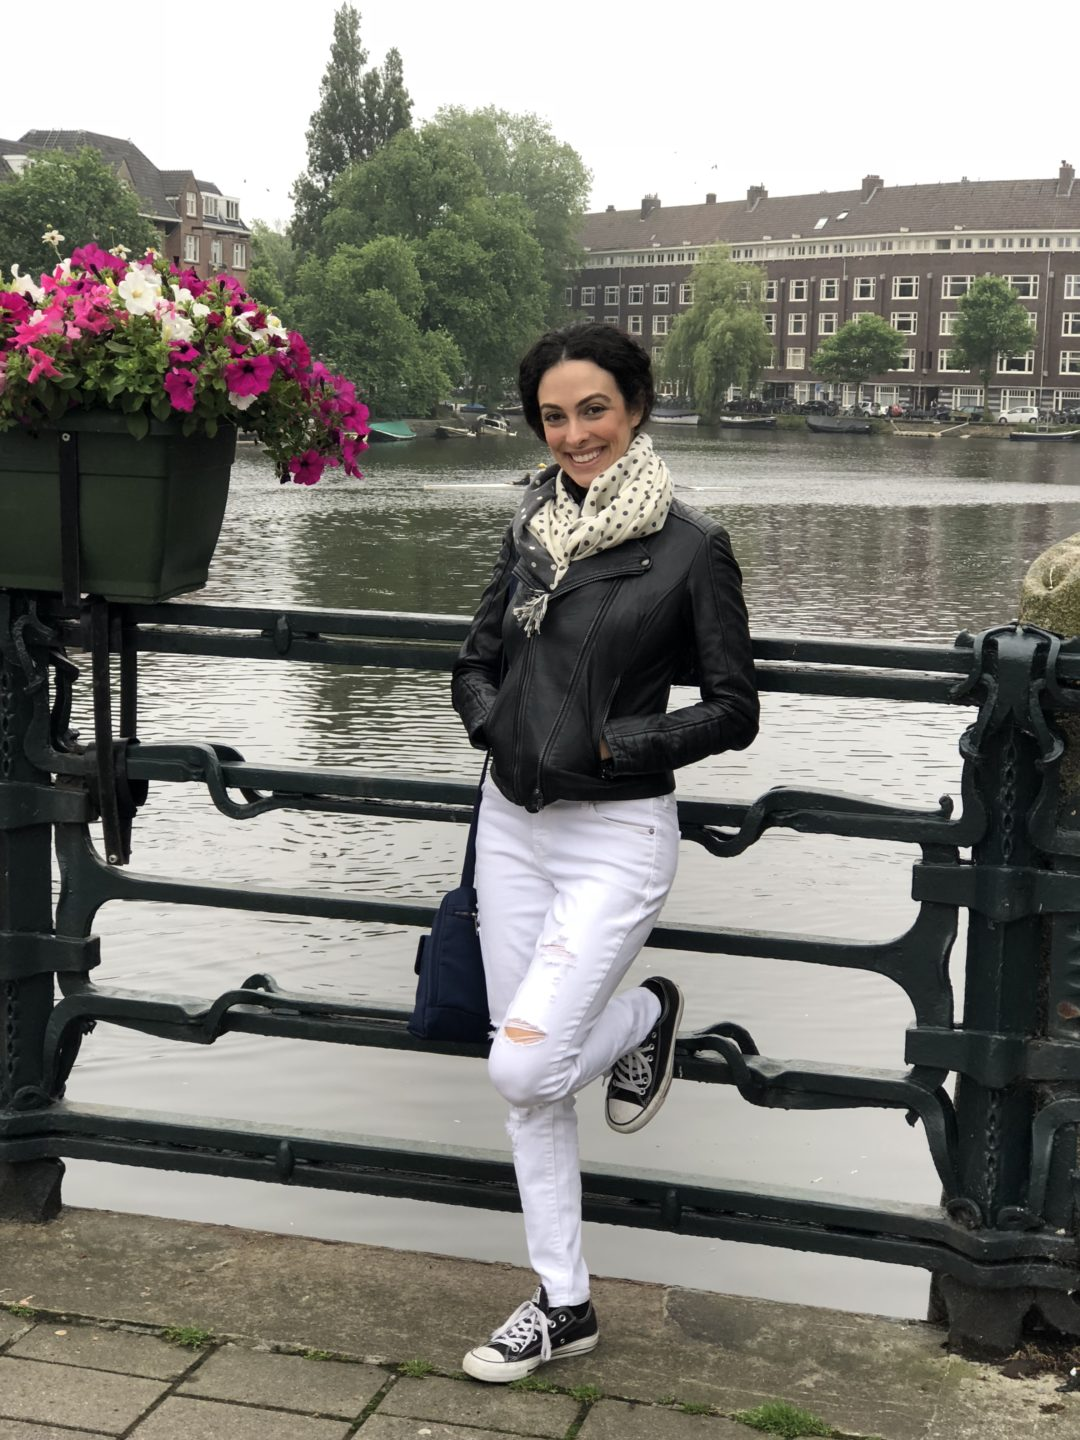 FODMAp travels - Amsterdam Travel Guide outside the canal